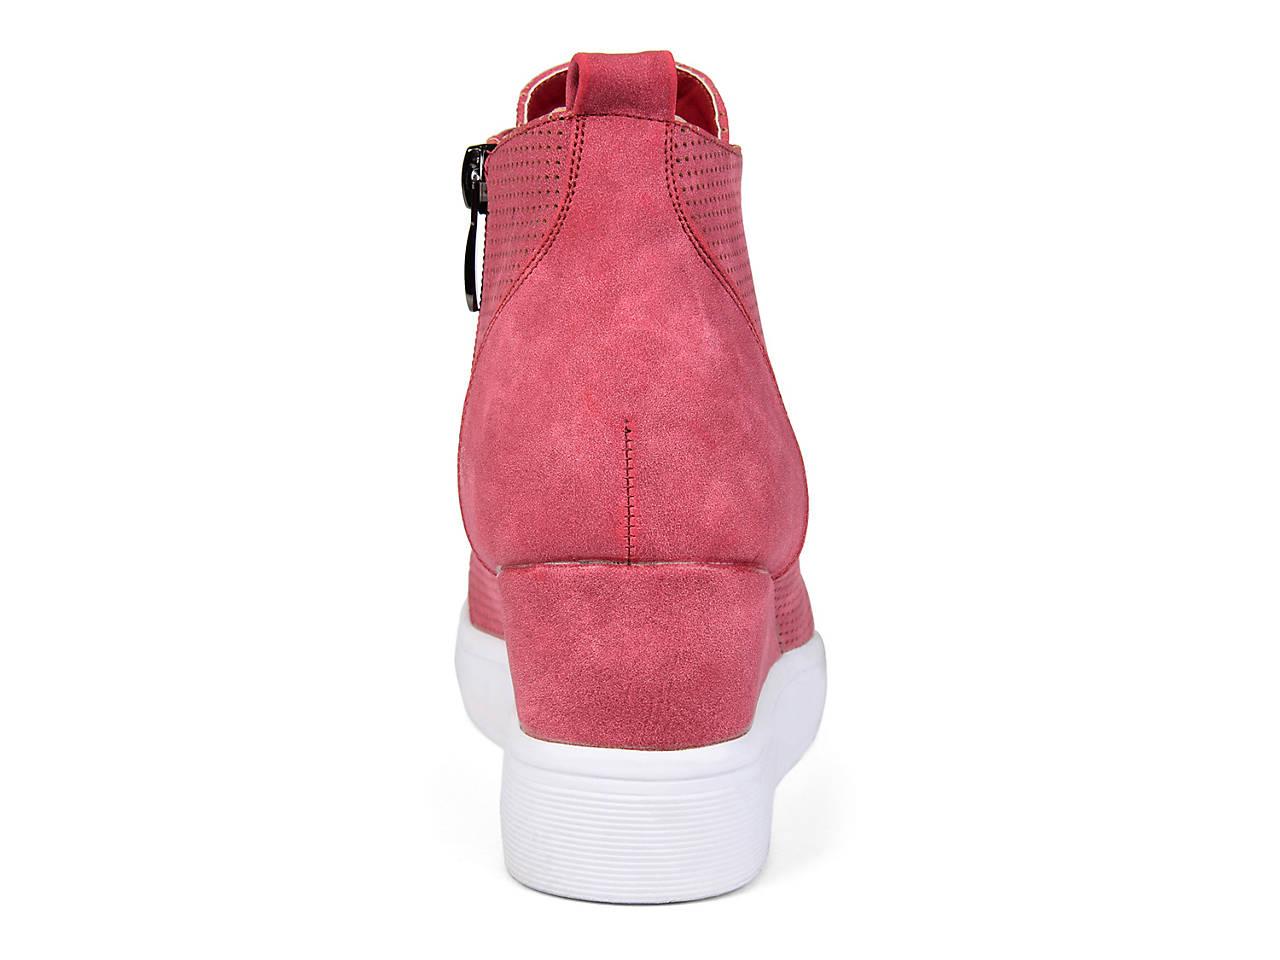 a3df9f526fc Journee Collection Clara Wedge Sneaker Women s Shoes